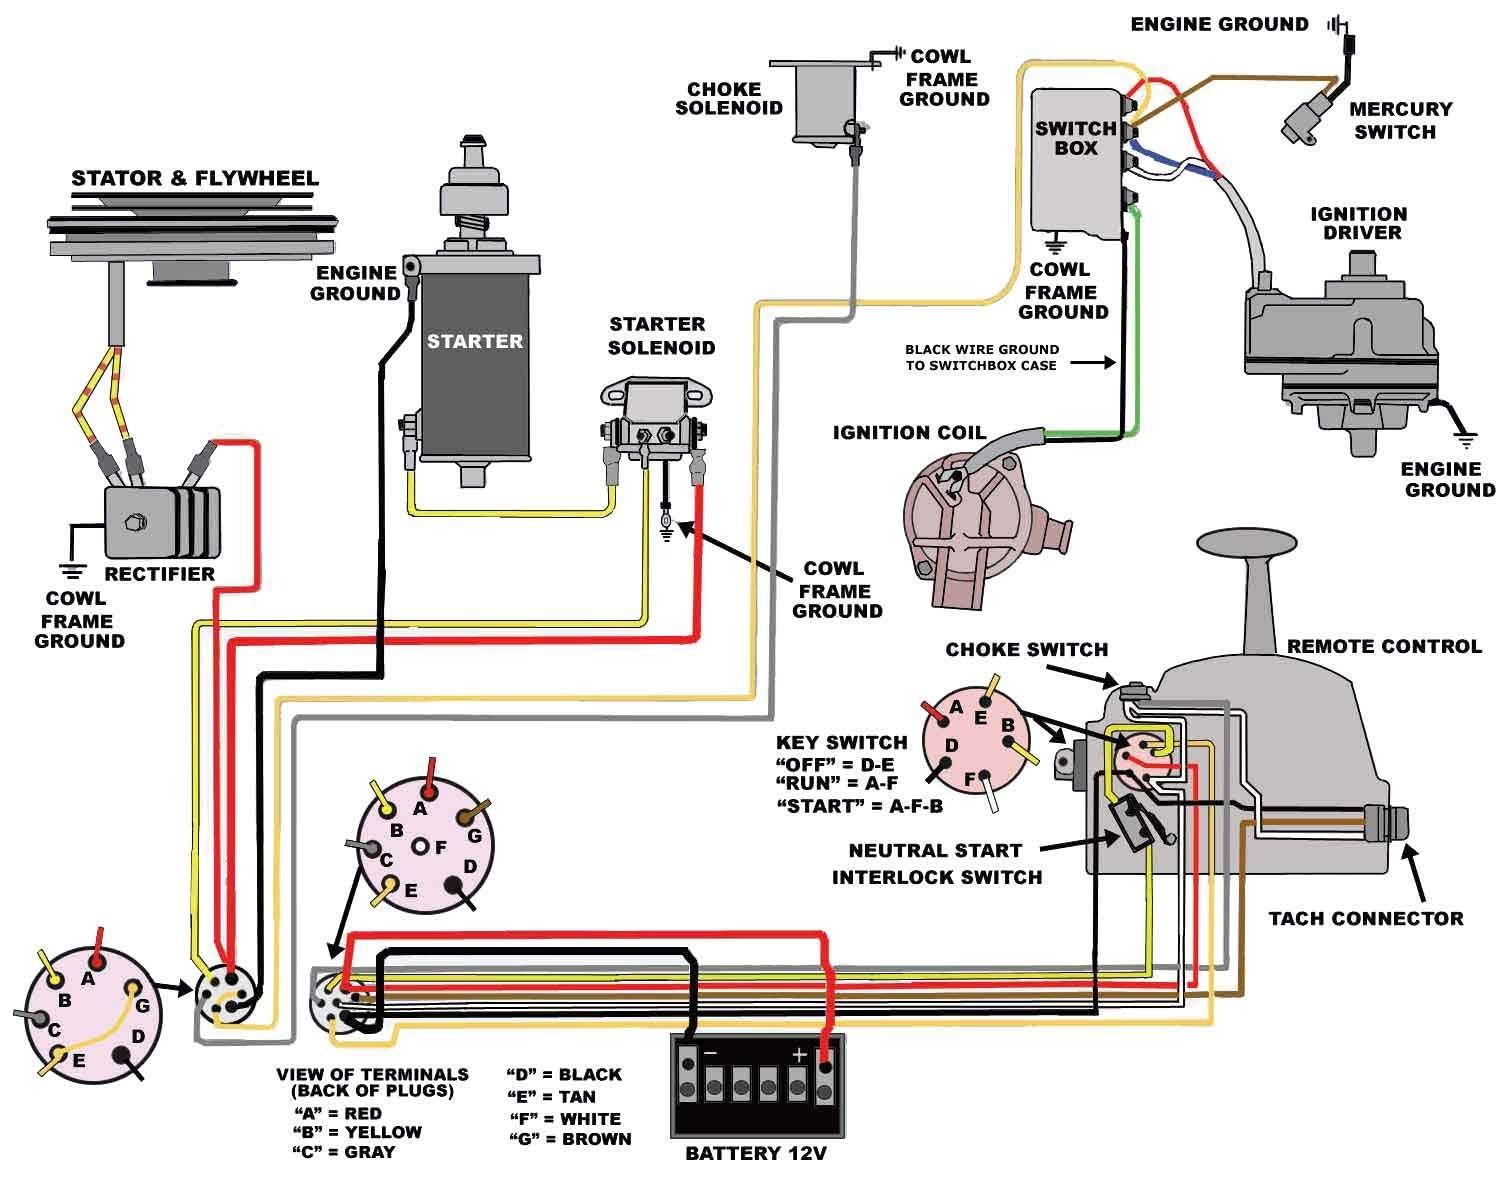 Mercury Starter Wiring - wiring diagram on the net on